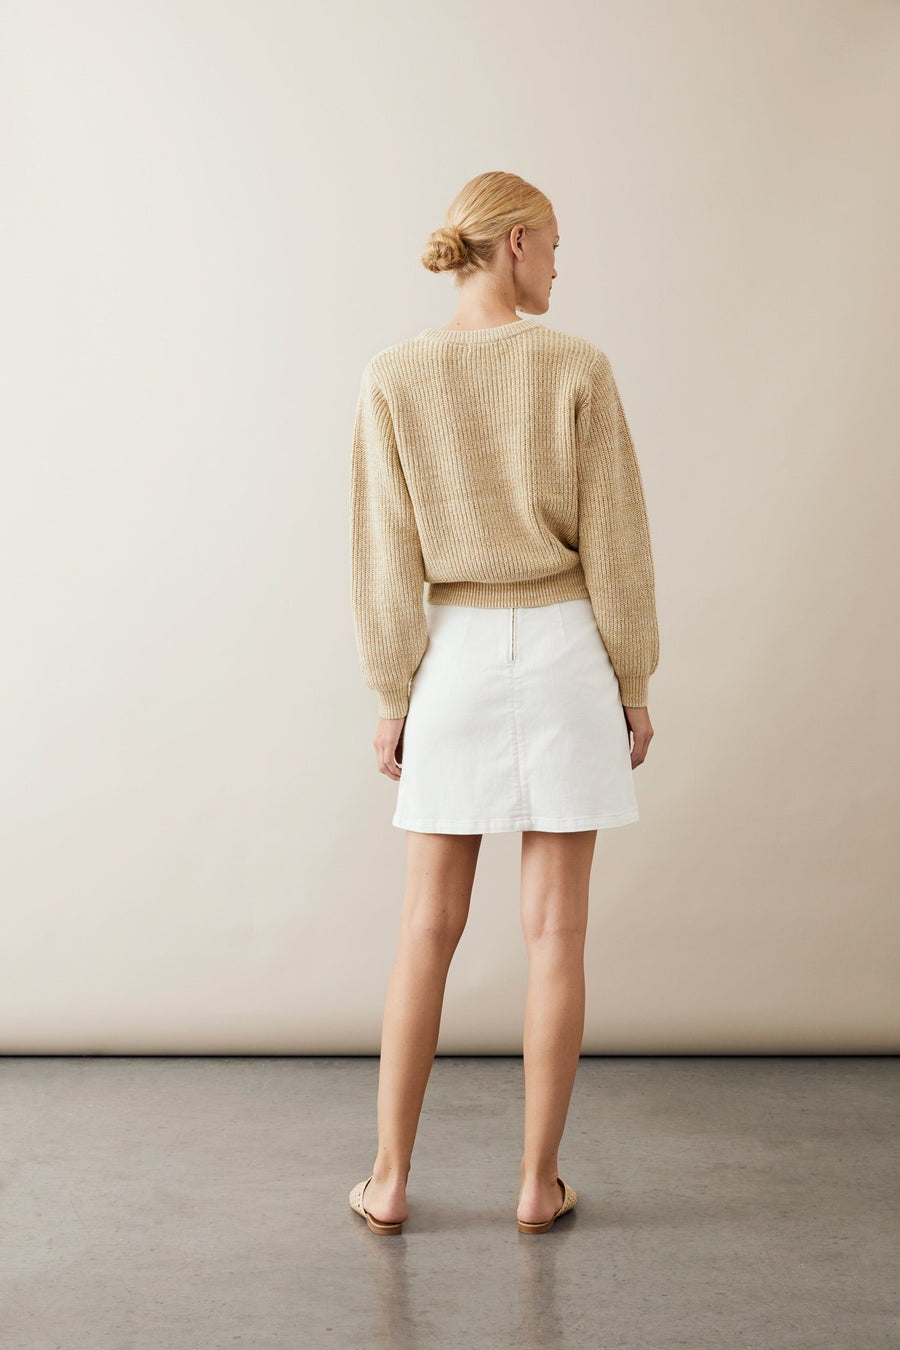 KAMI SKIRT - OFF WHITE Skirt Stylein